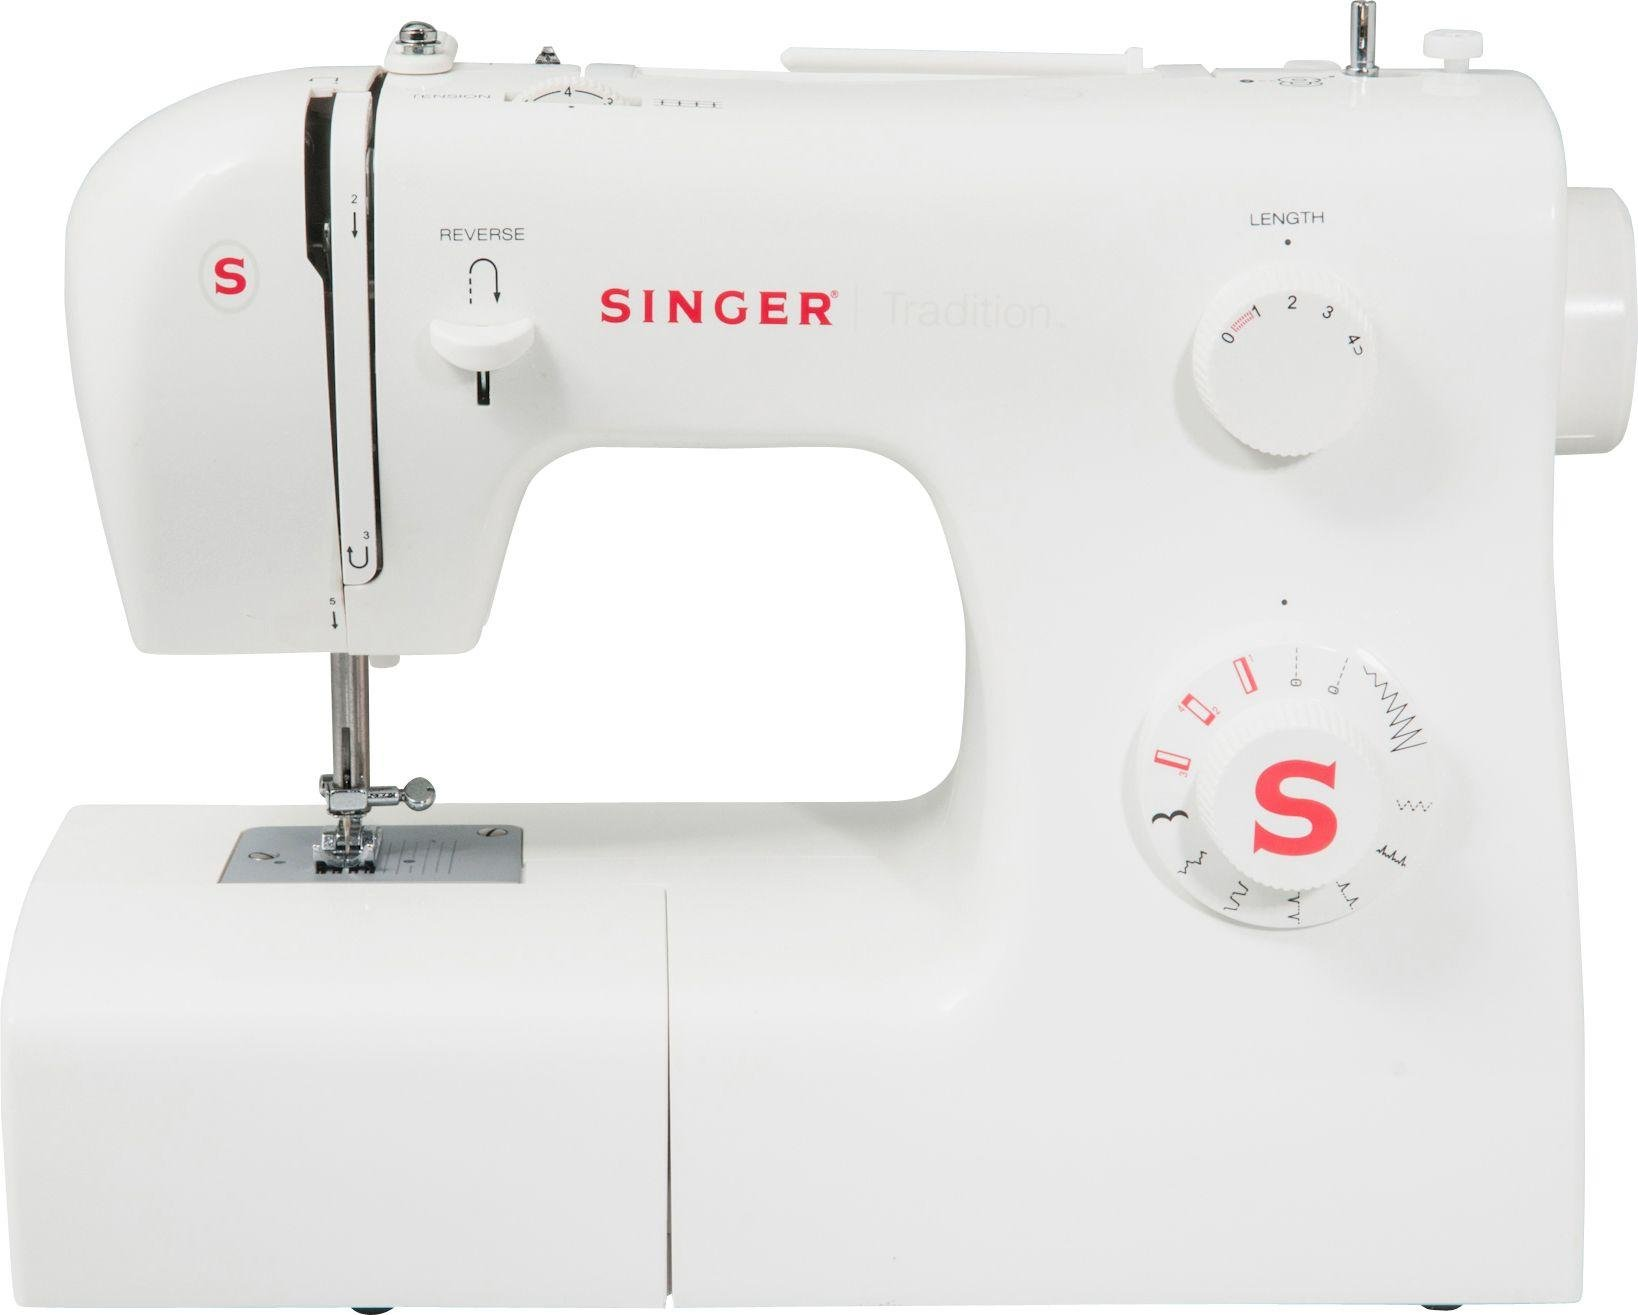 Singer - Tradition 2250 Compact Sewing Machine - White